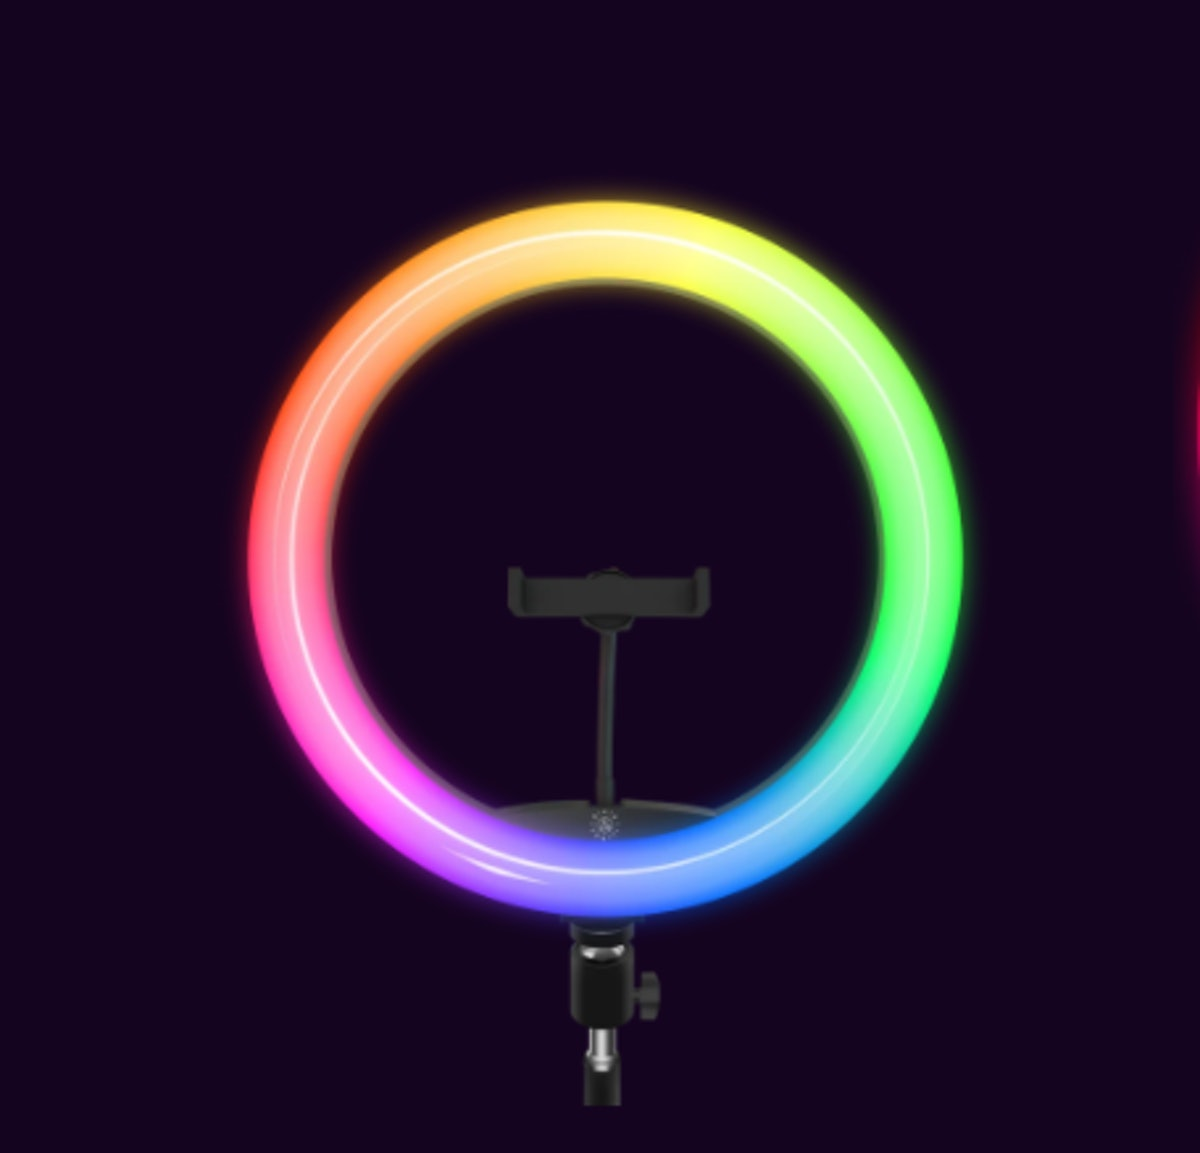 Charli and Dixie Ring Light Collection